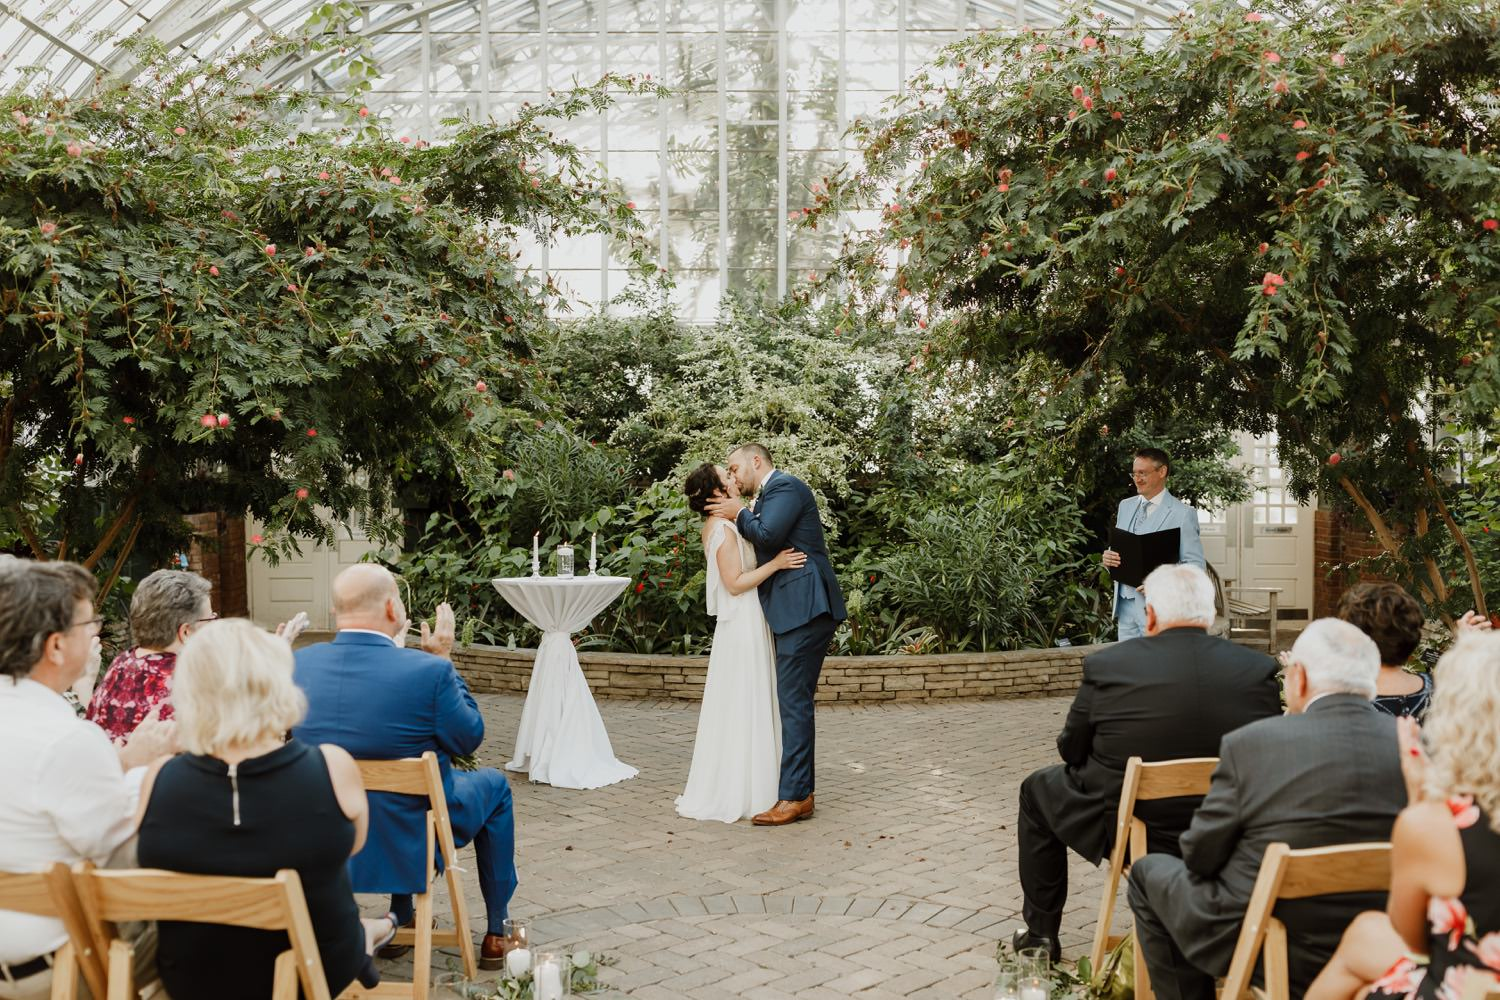 First kiss at the wedding at Garfield Park Conservatory wedding